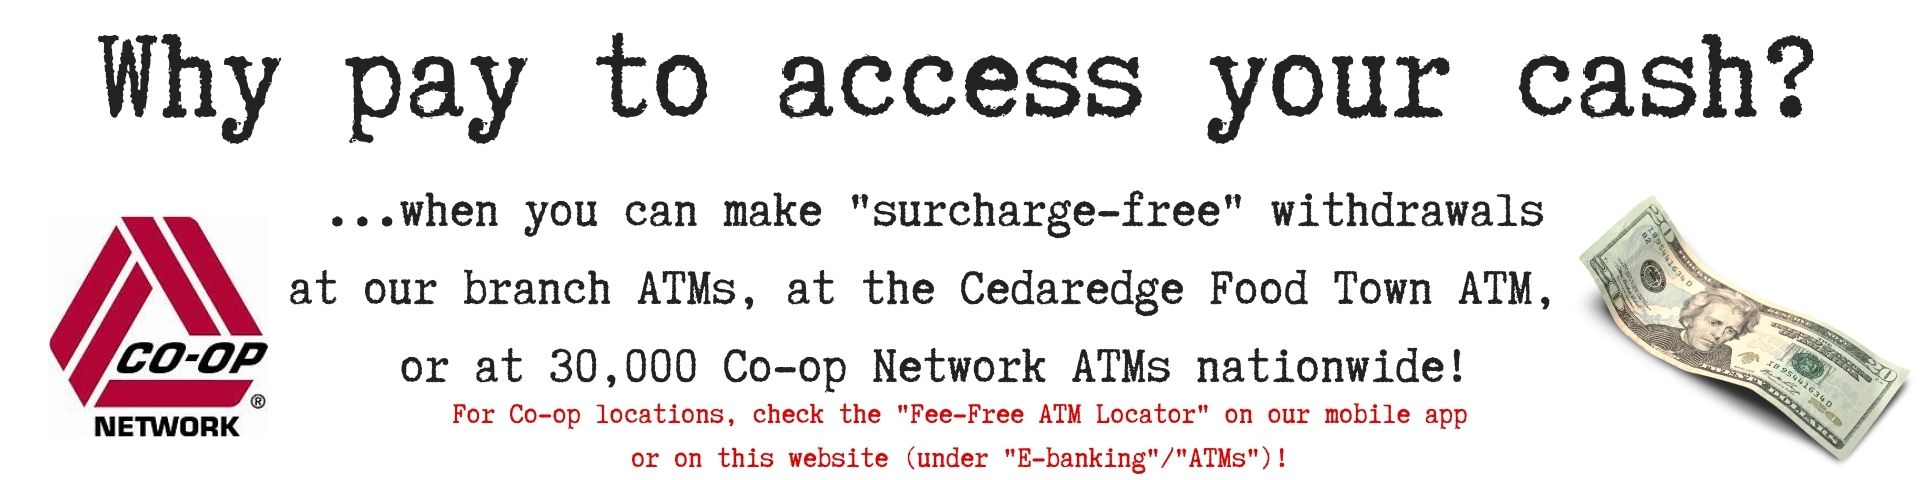 Why pay access to your cash? Access to 30,000 atms nation wide.